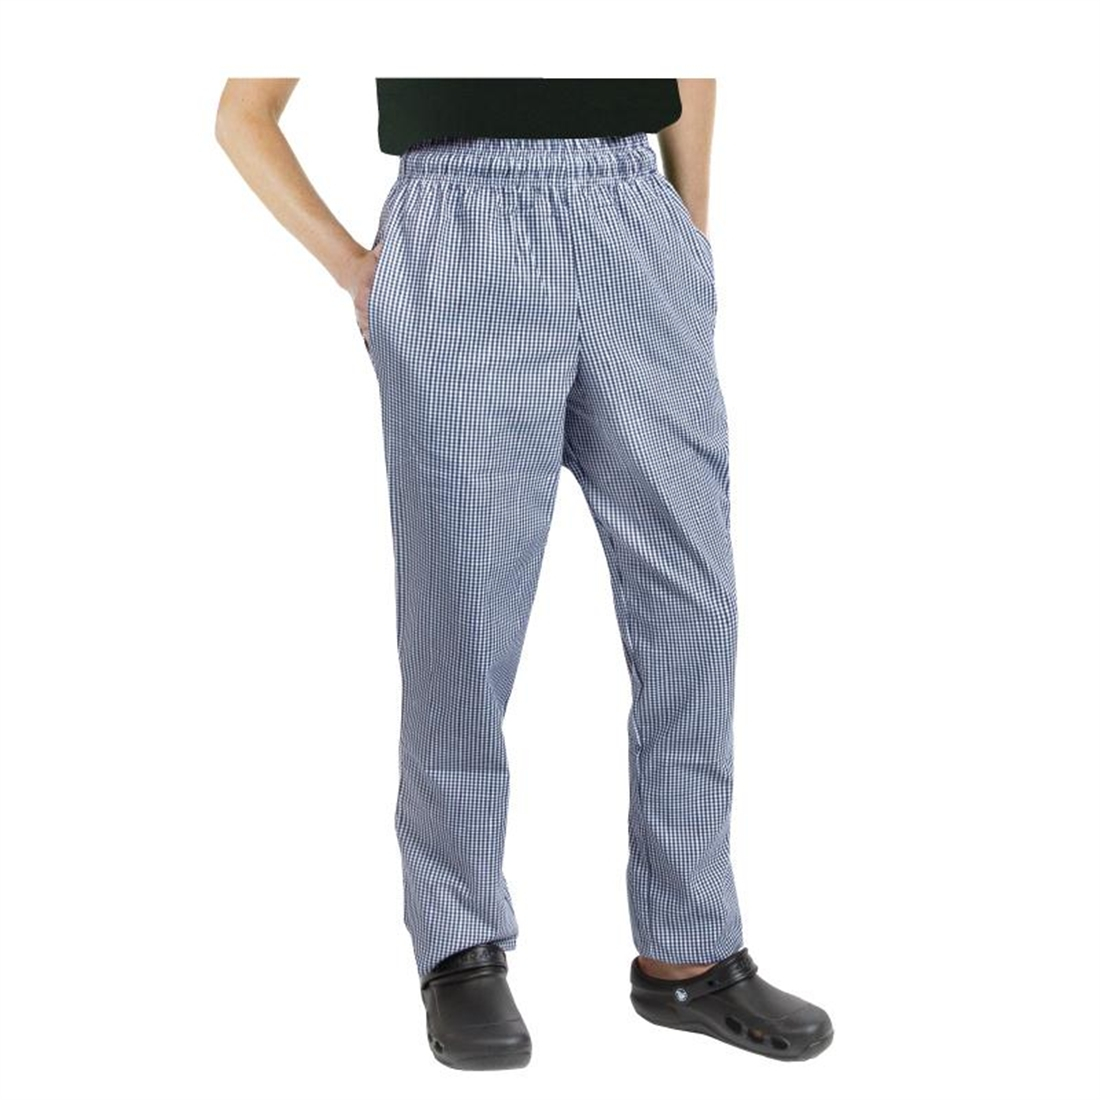 Chef Works Unisex Easyfit Chefs Trousers Small Blue Check S